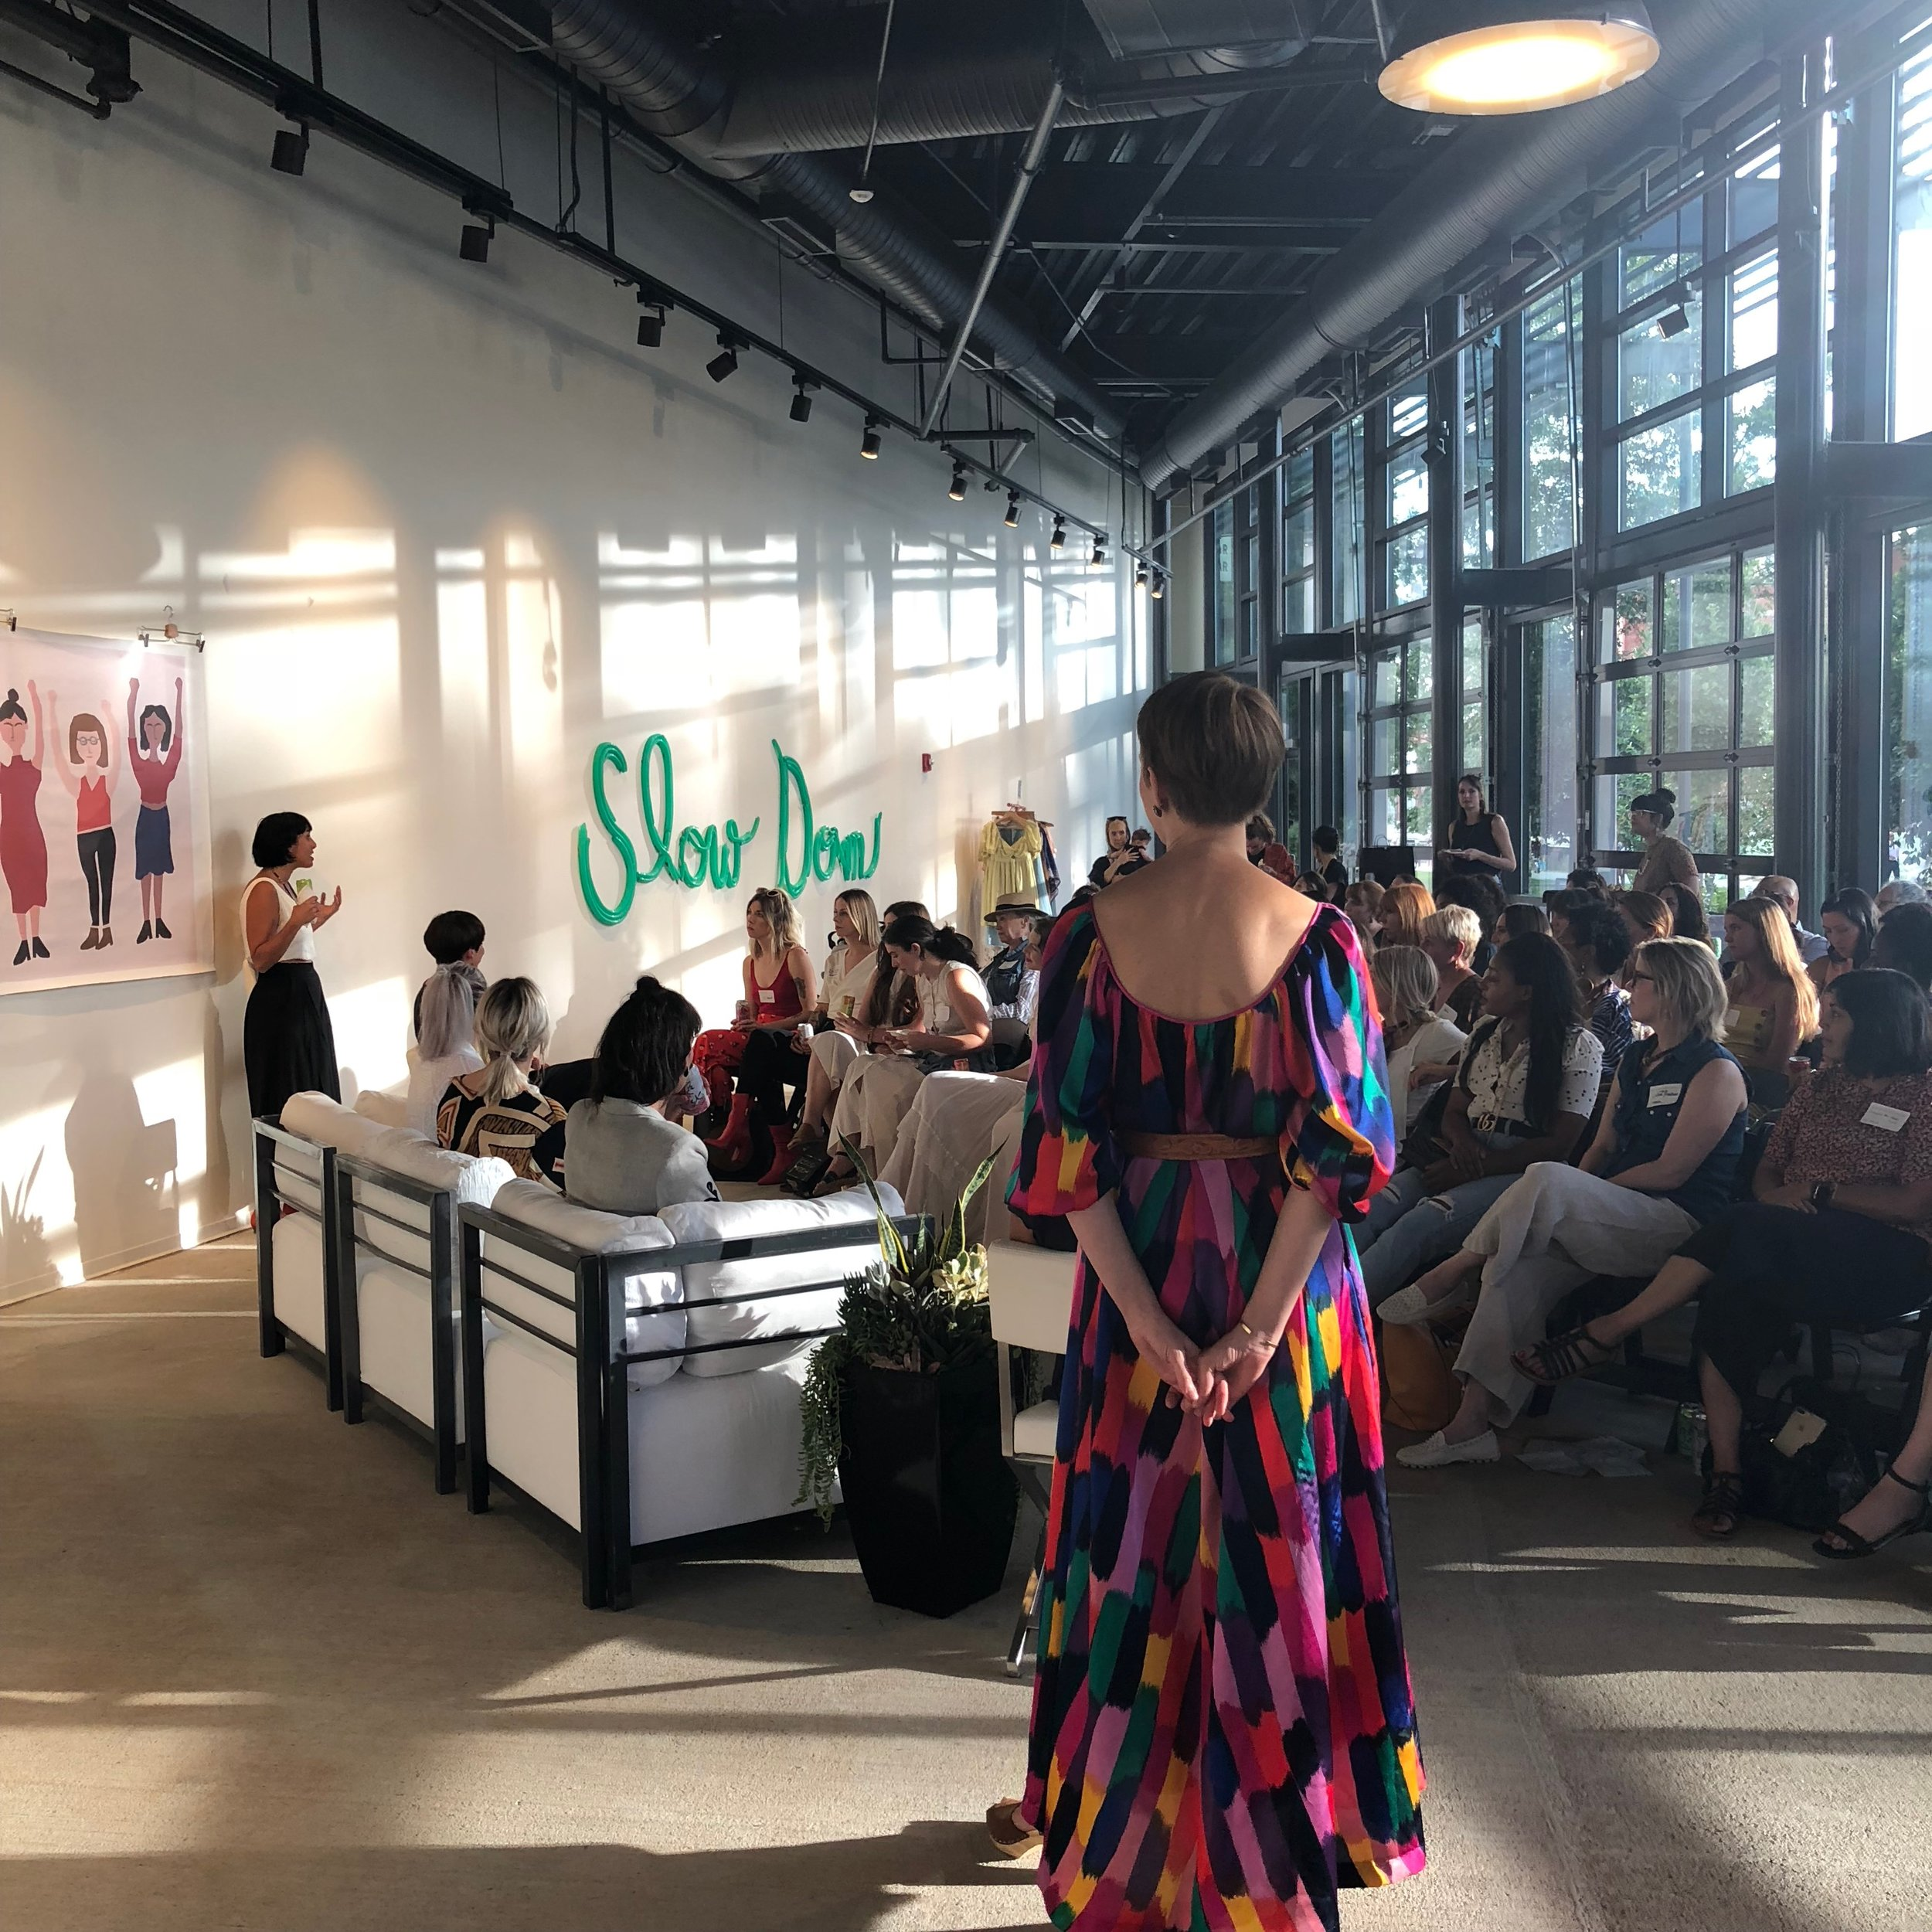 Last Year - In 2018, they hosted & moderated a discussion on ethical fashion with special guest Elizabeth Cline, author of Overdressed. Also on the panel were Megan Huntz, Lauren Remesi, Tara Pesta, and Sanni BaumgärtnerThe result was a sold-out room and a conversation that lasted almost 3 hours! People were hungry for more, and they felt like there was so much more to be said.